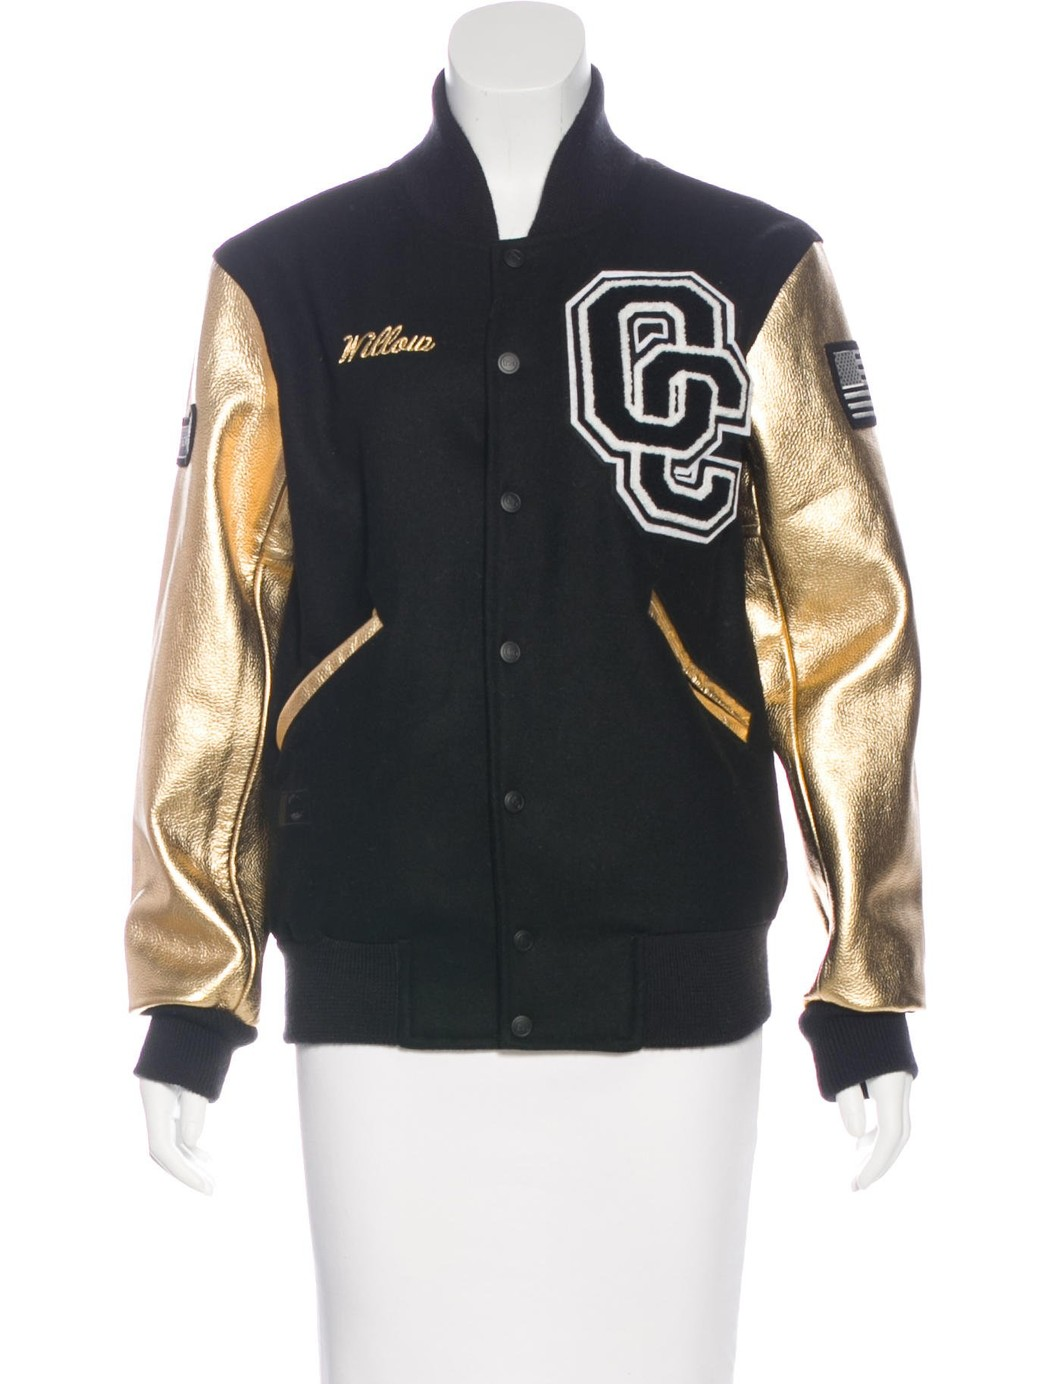 Opening Ceremony wool and leather varsity jacket (XS) from Willow Smith, $345.